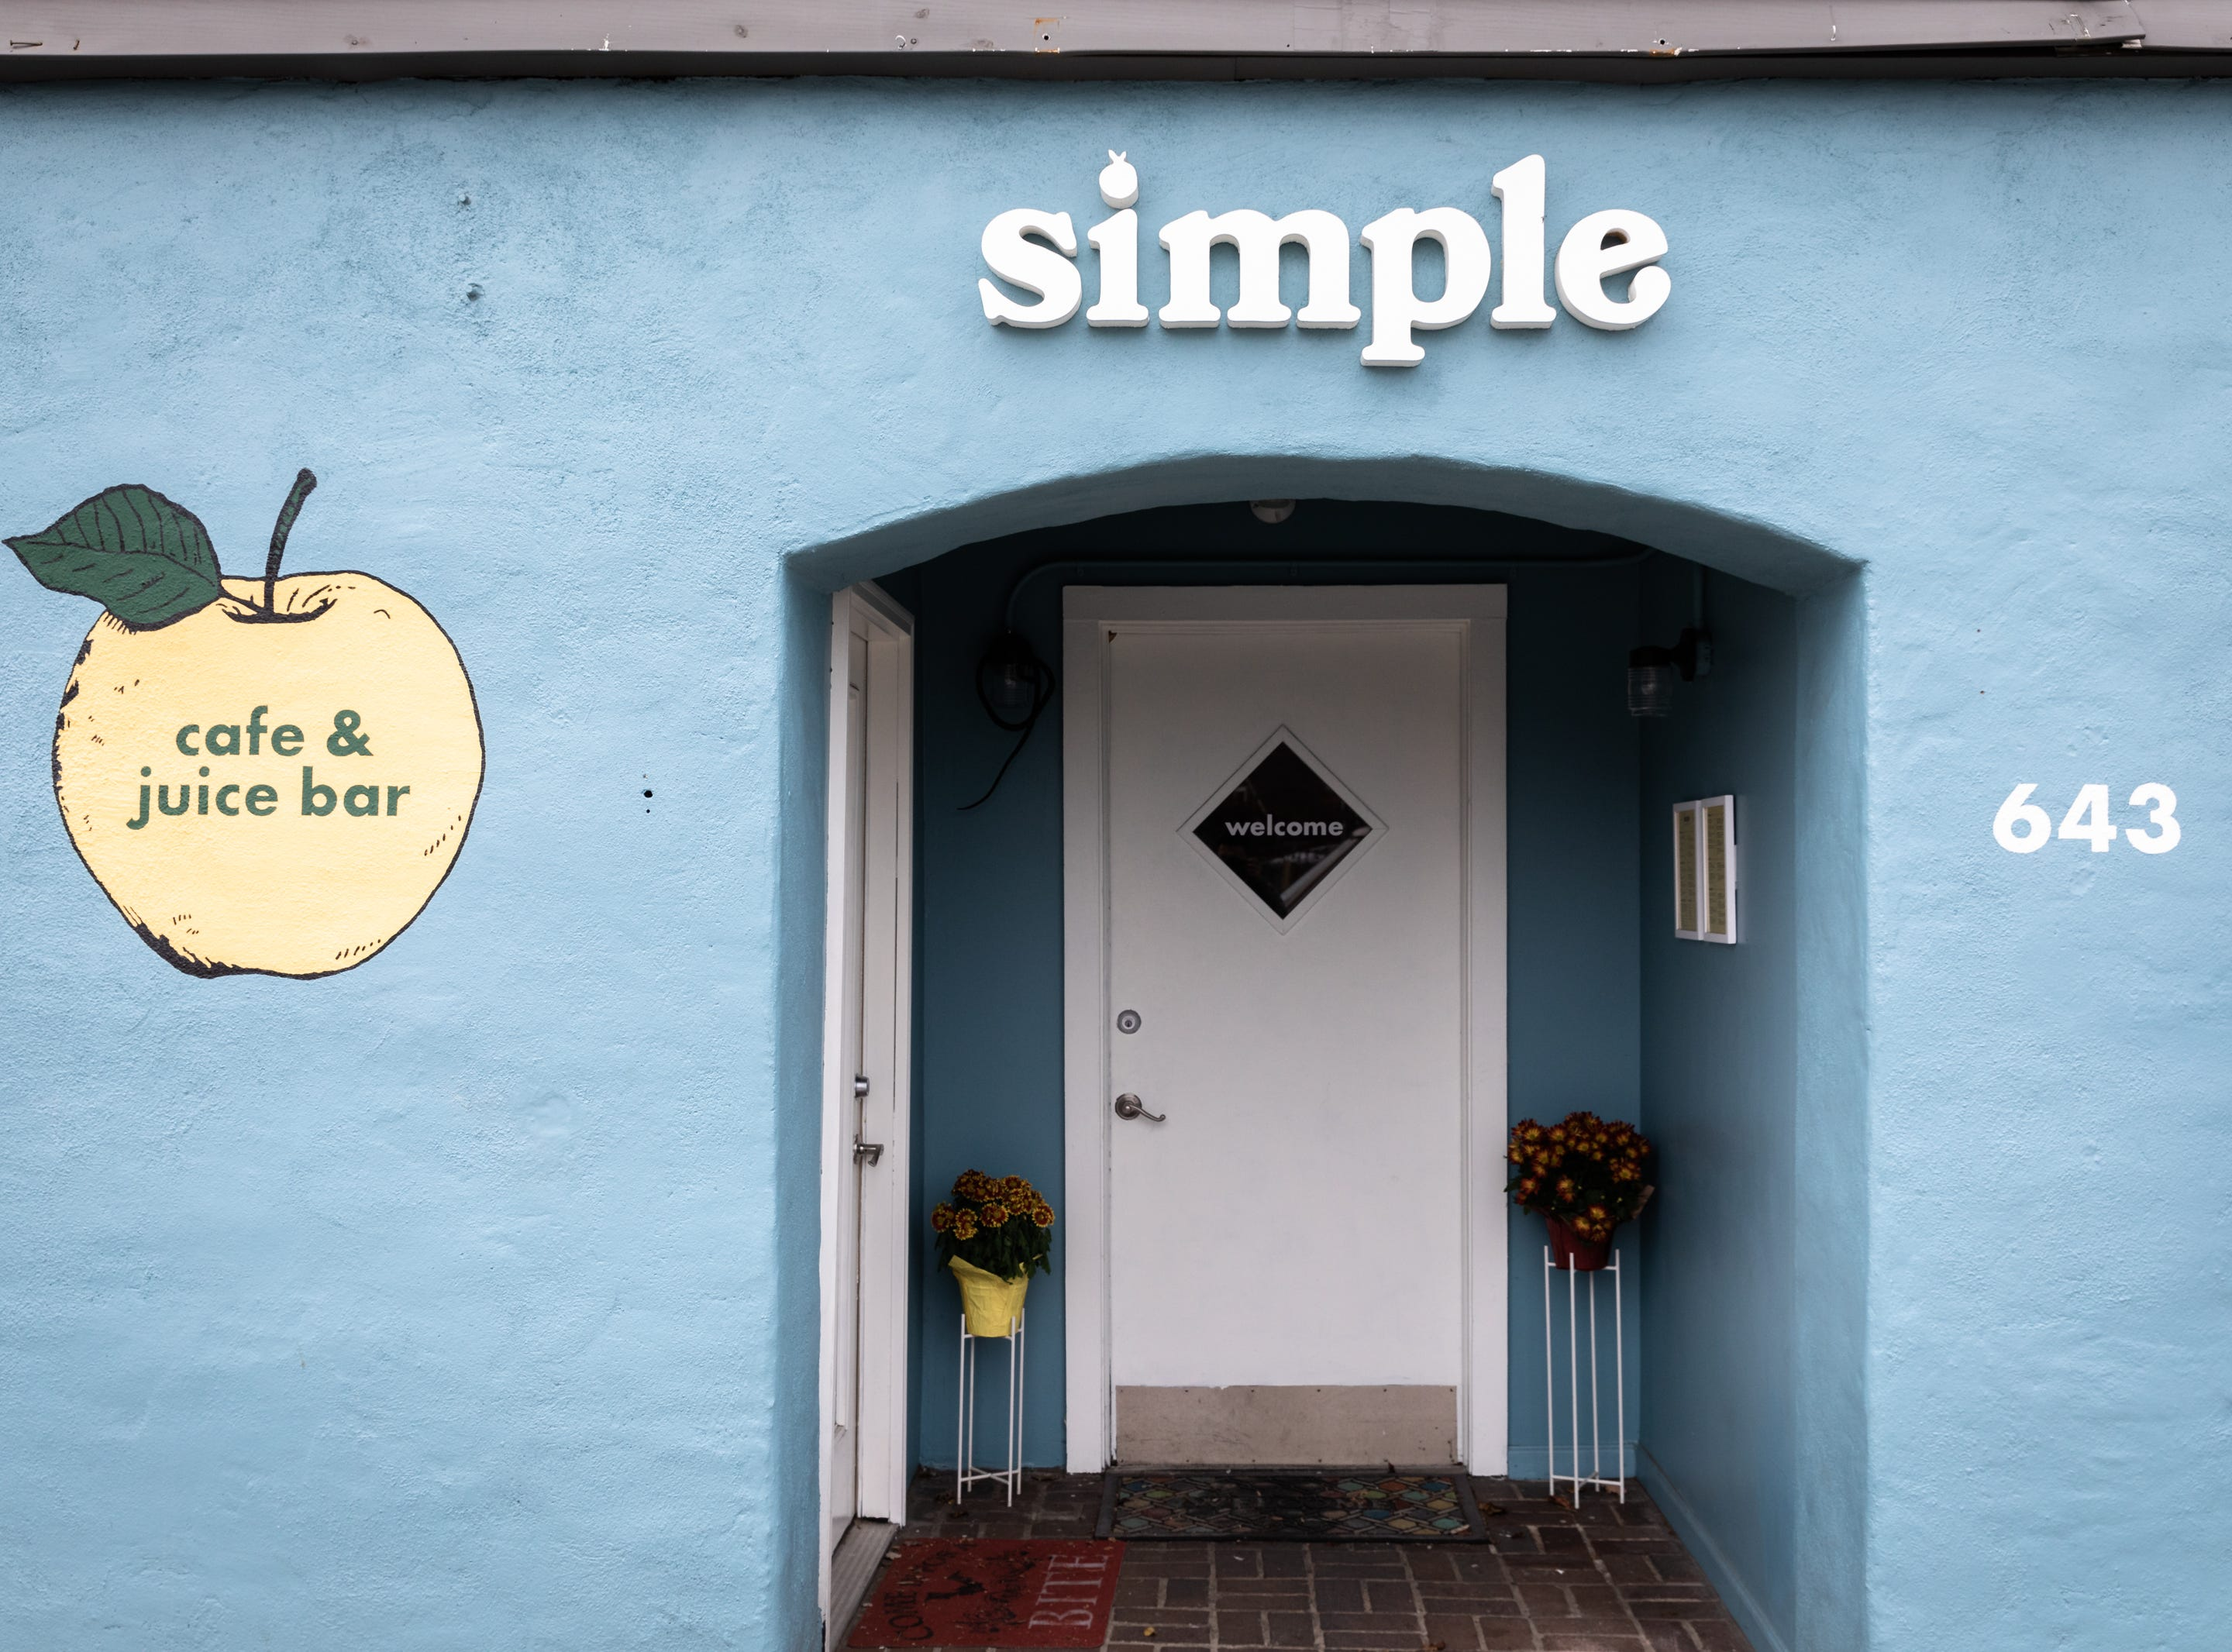 Dining review: Simple Cafe in West Asheville